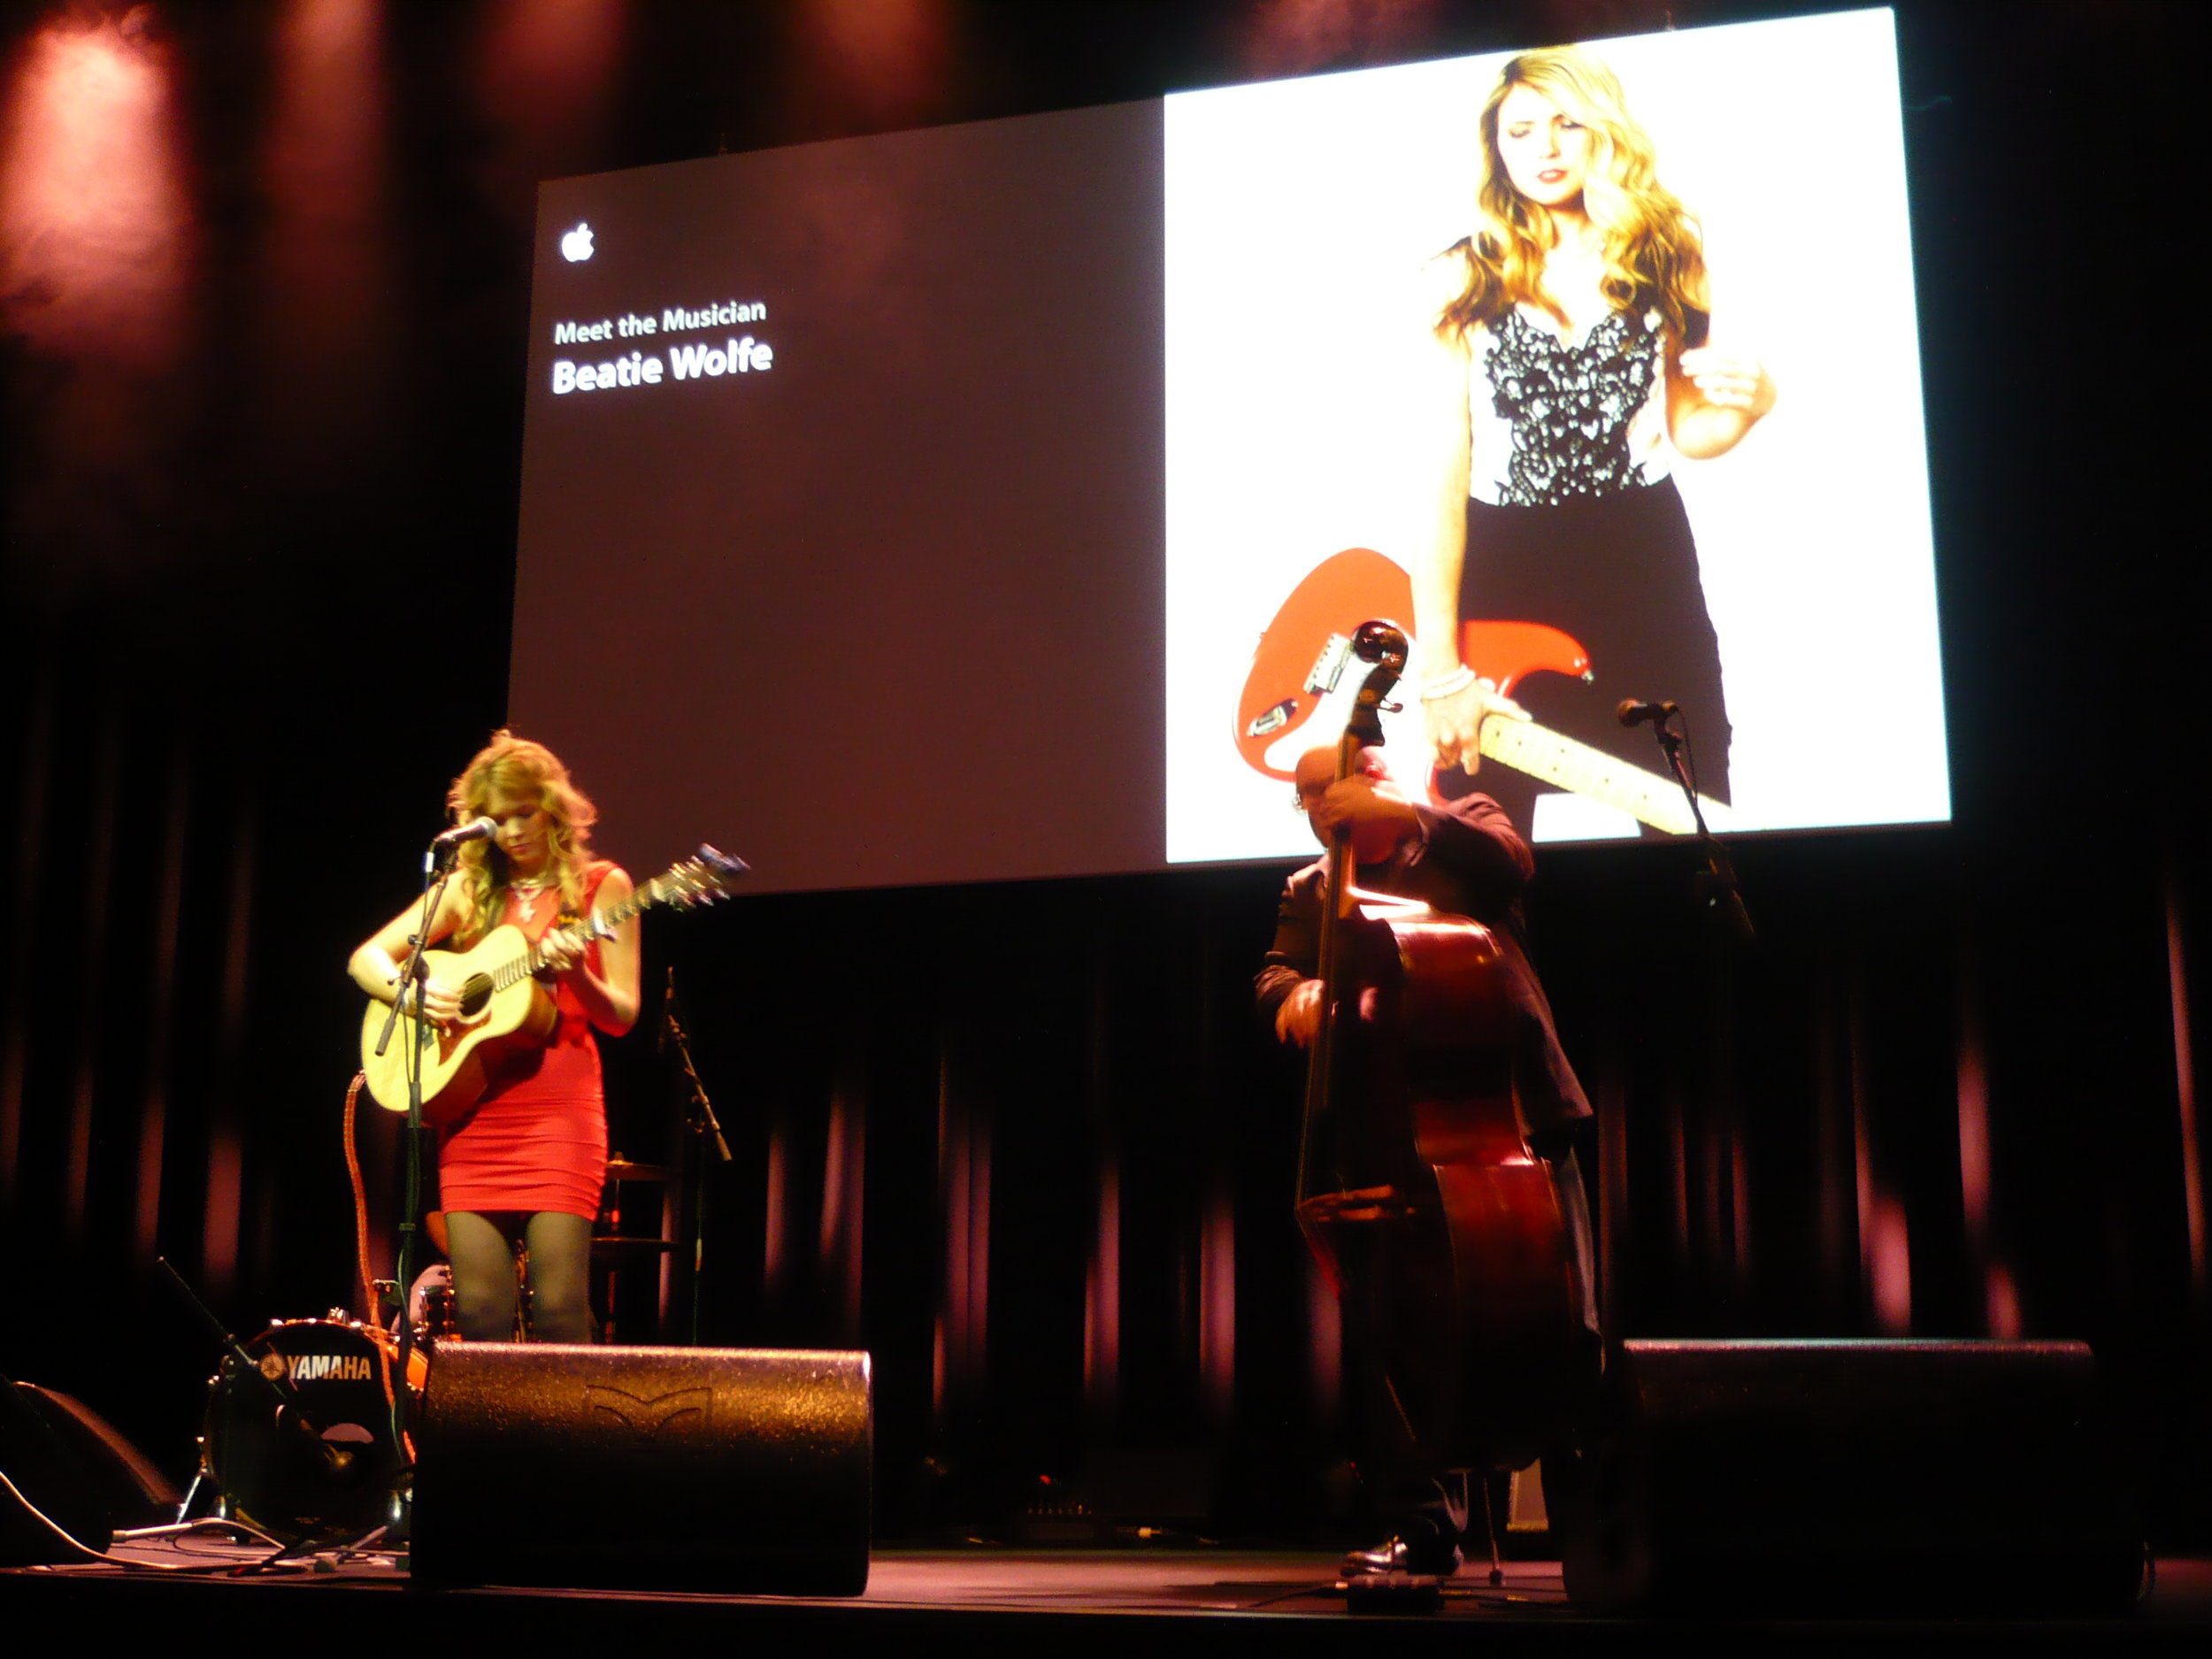 Beatie Wolfe performs at Berlin Apple Theatre